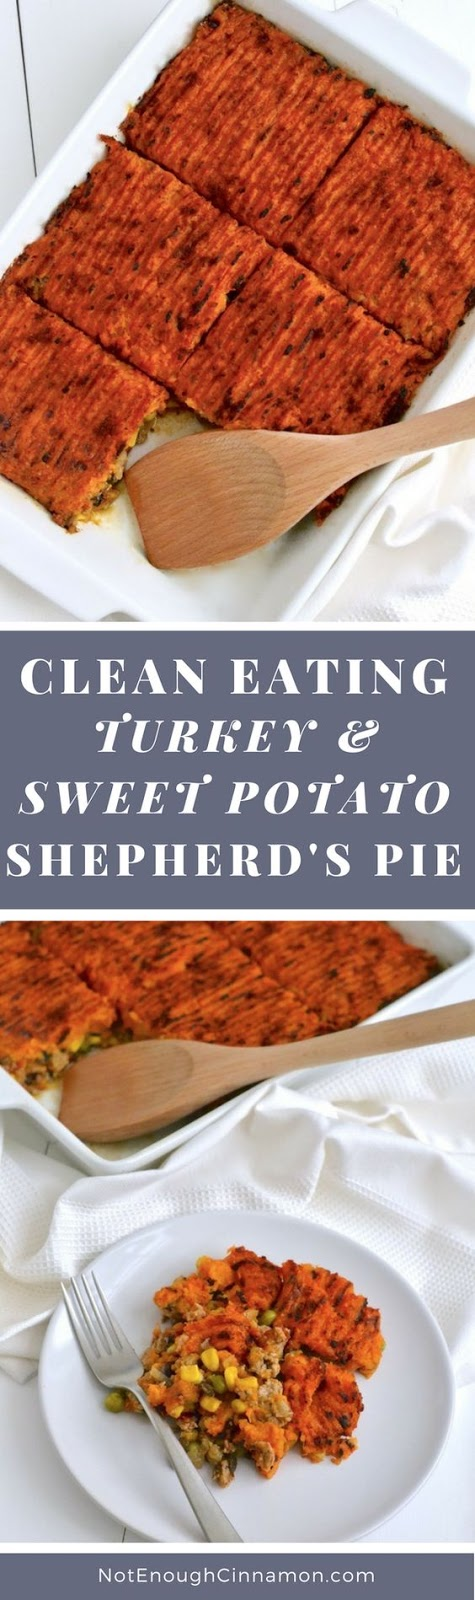 Clean Eating Turkey and Sweet Potato Shepherd's Pie